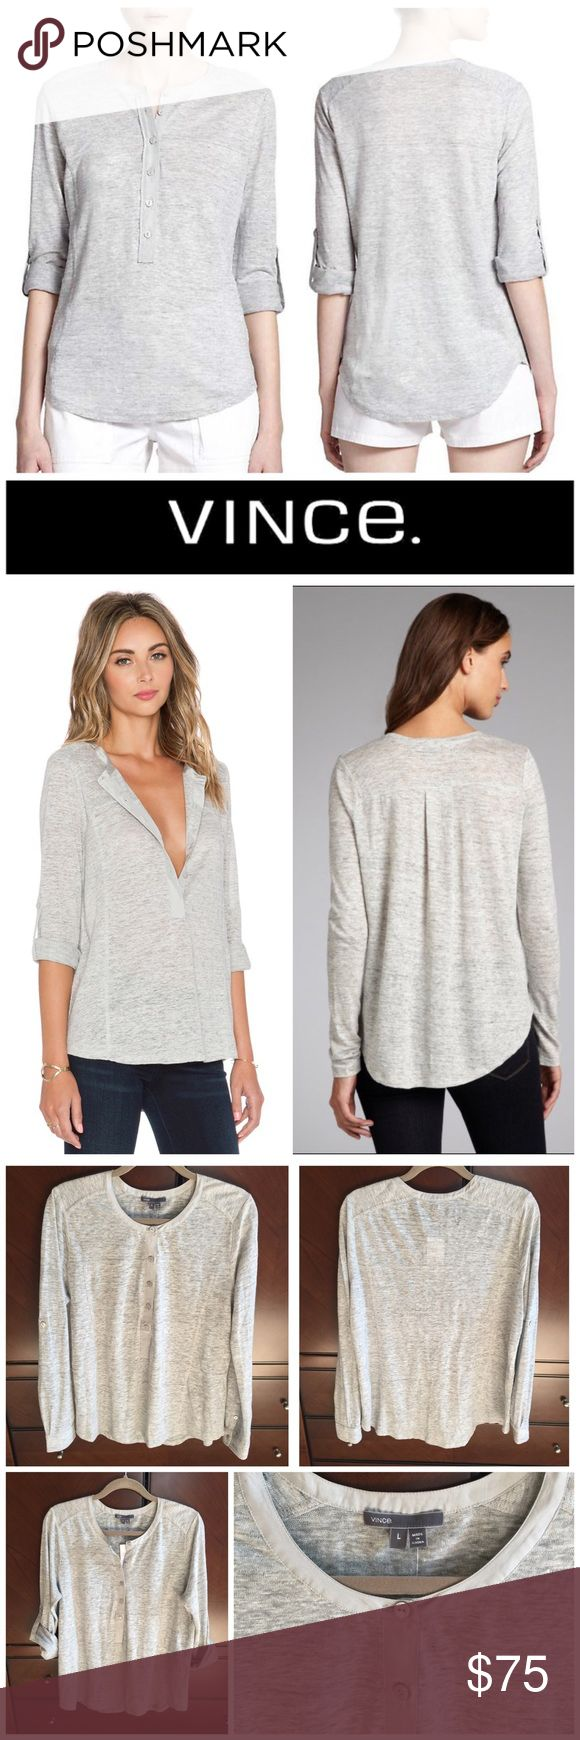 Linen Henley Top with Silk Trim NWT, 100% linen heather grey henley top from Vince.  Trimmed with 100% silk.  Casual chic top that you can wear year round. Vince Tops Blouses